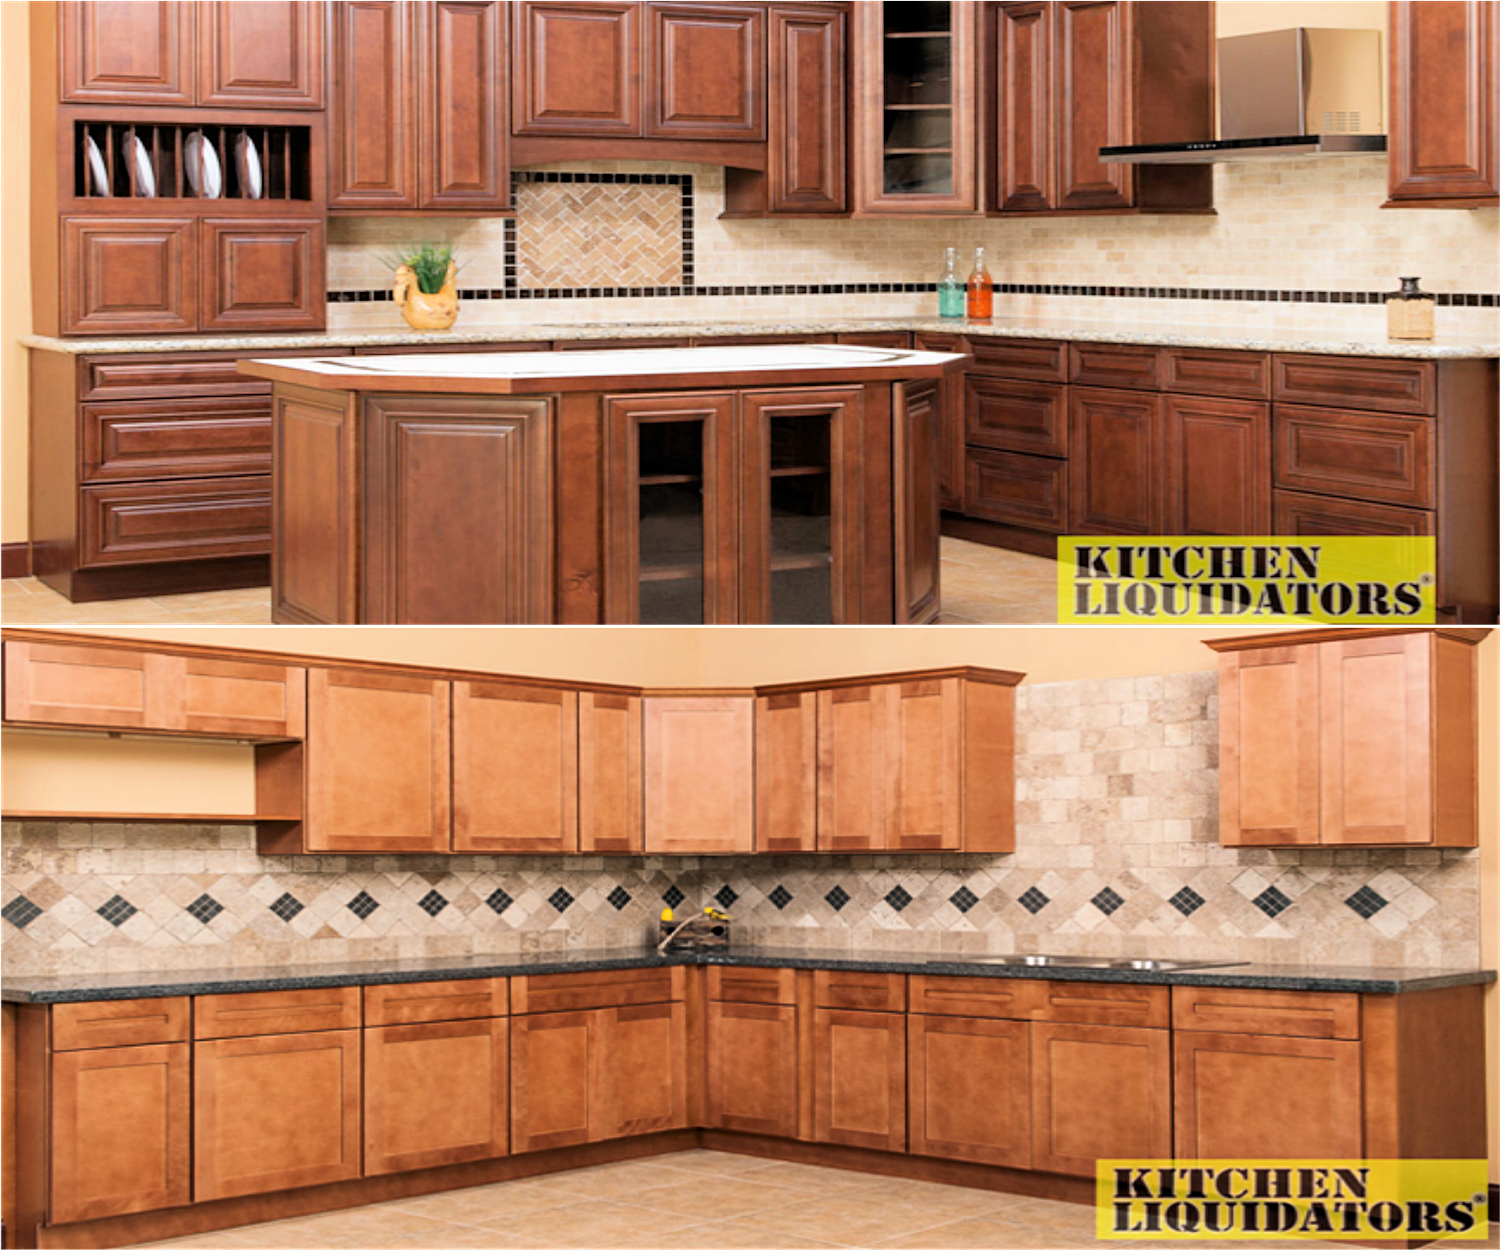 Buying Direct From The Usa Kitchen Liquidators Carries A Large